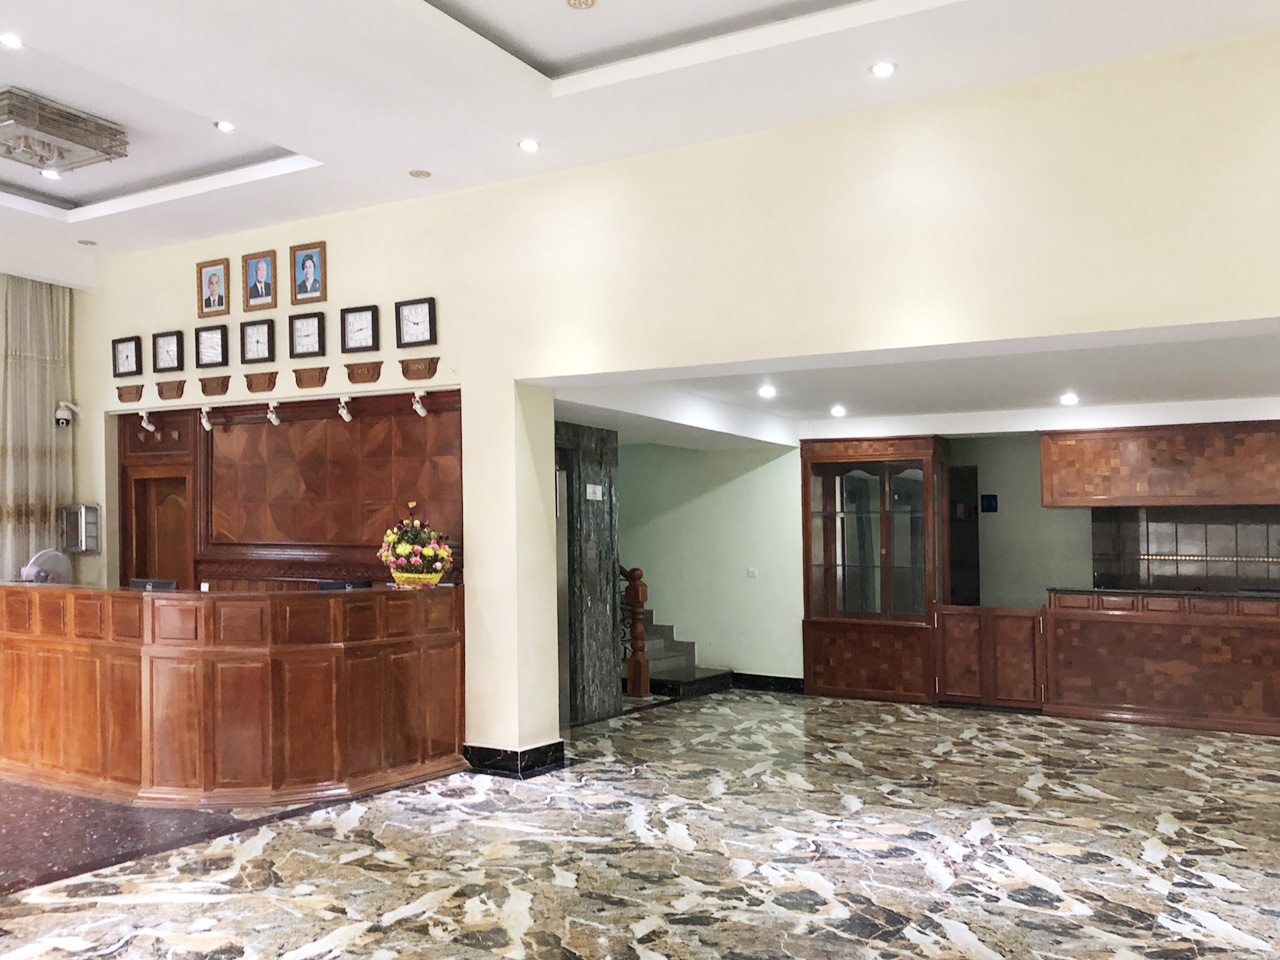 56-room hotel building for rent situated in 7 Makara area